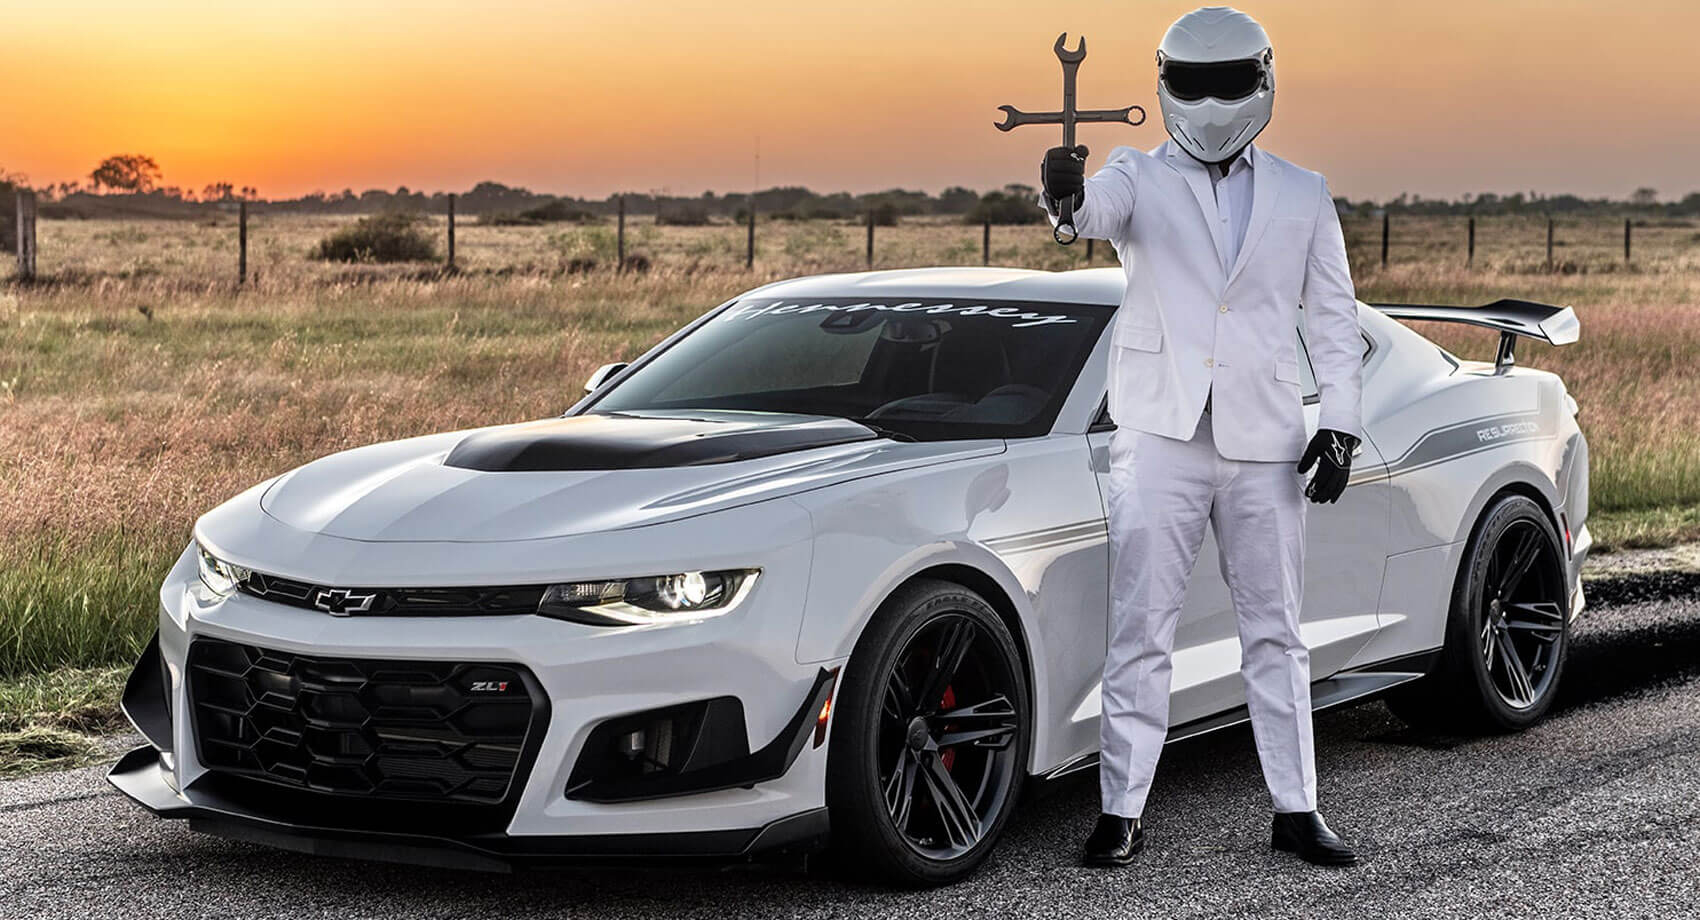 Hennessey Resurrection Is A 'vette-Powered Camaro Zl1 1Le 2021 Chevy Camaro Zl1 Weight, Wheels, 0-60